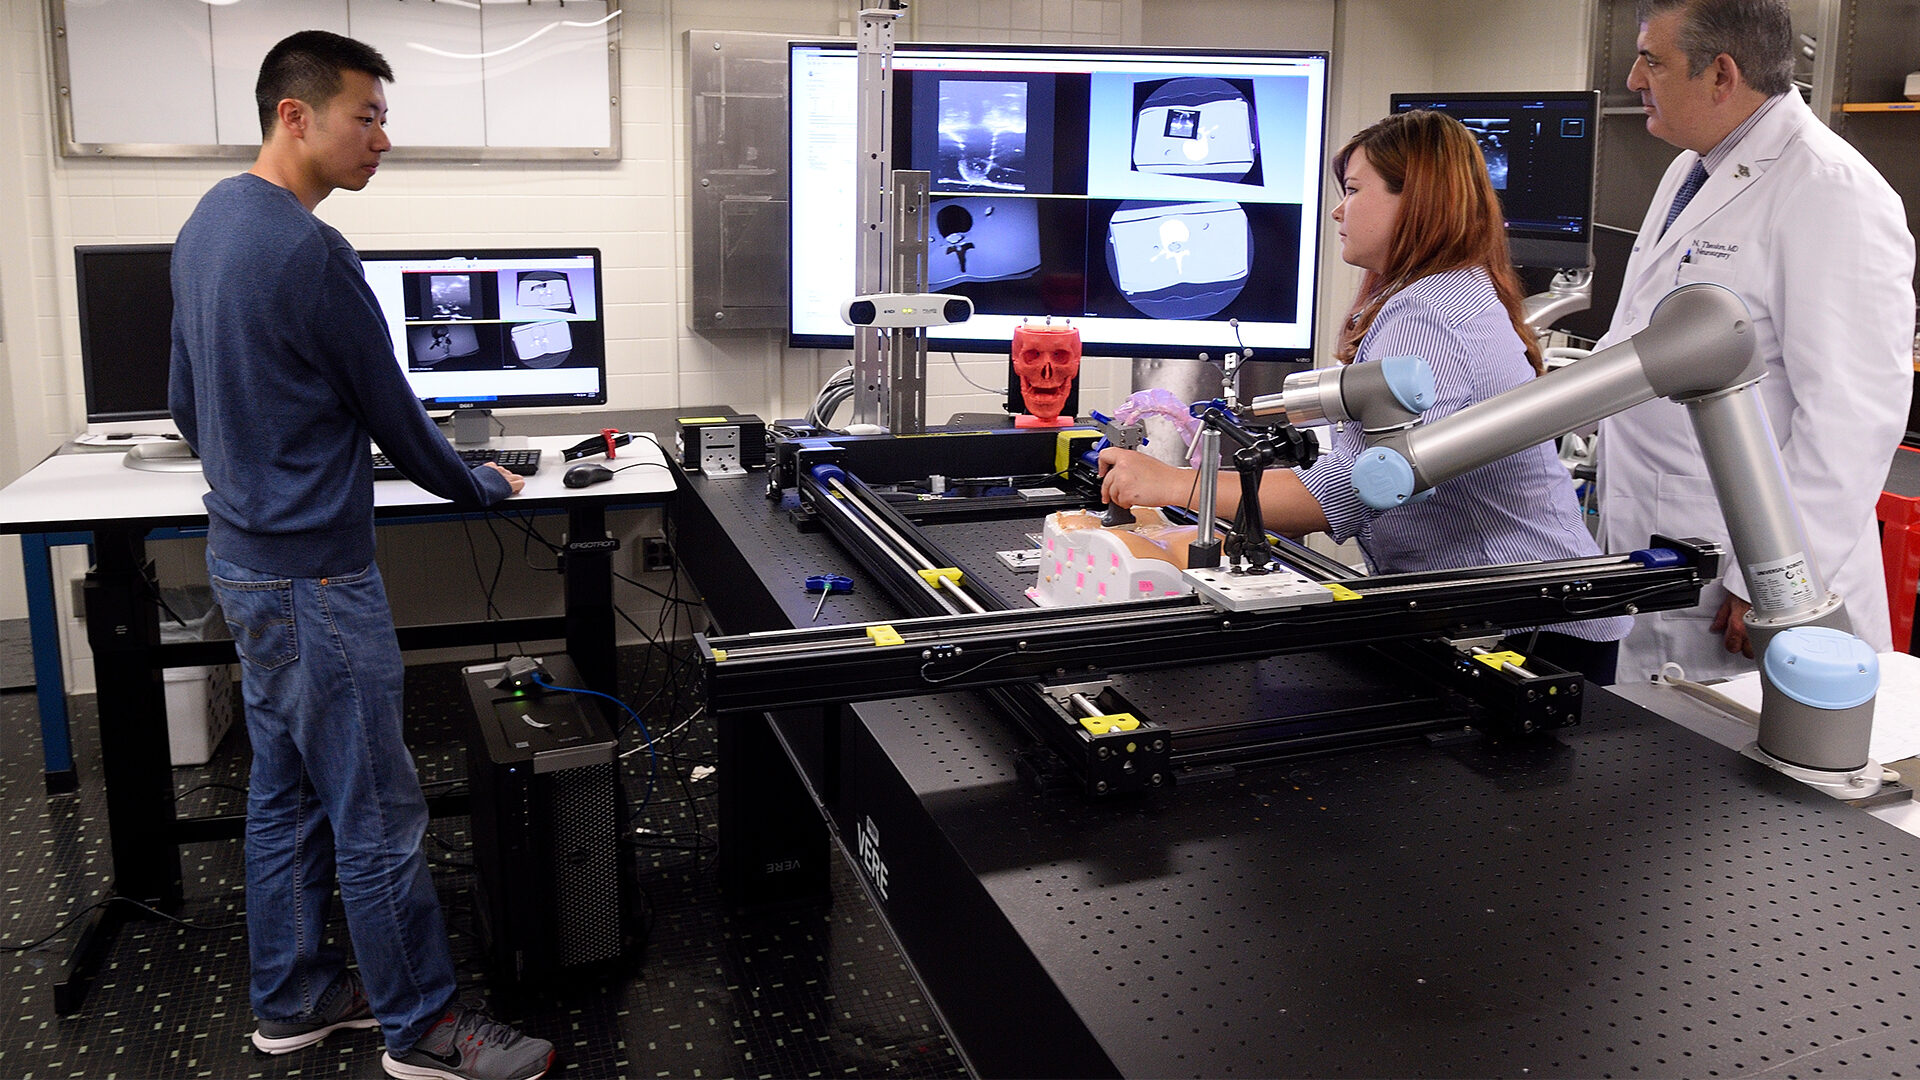 A wide shot of an imaging lab with three people working.